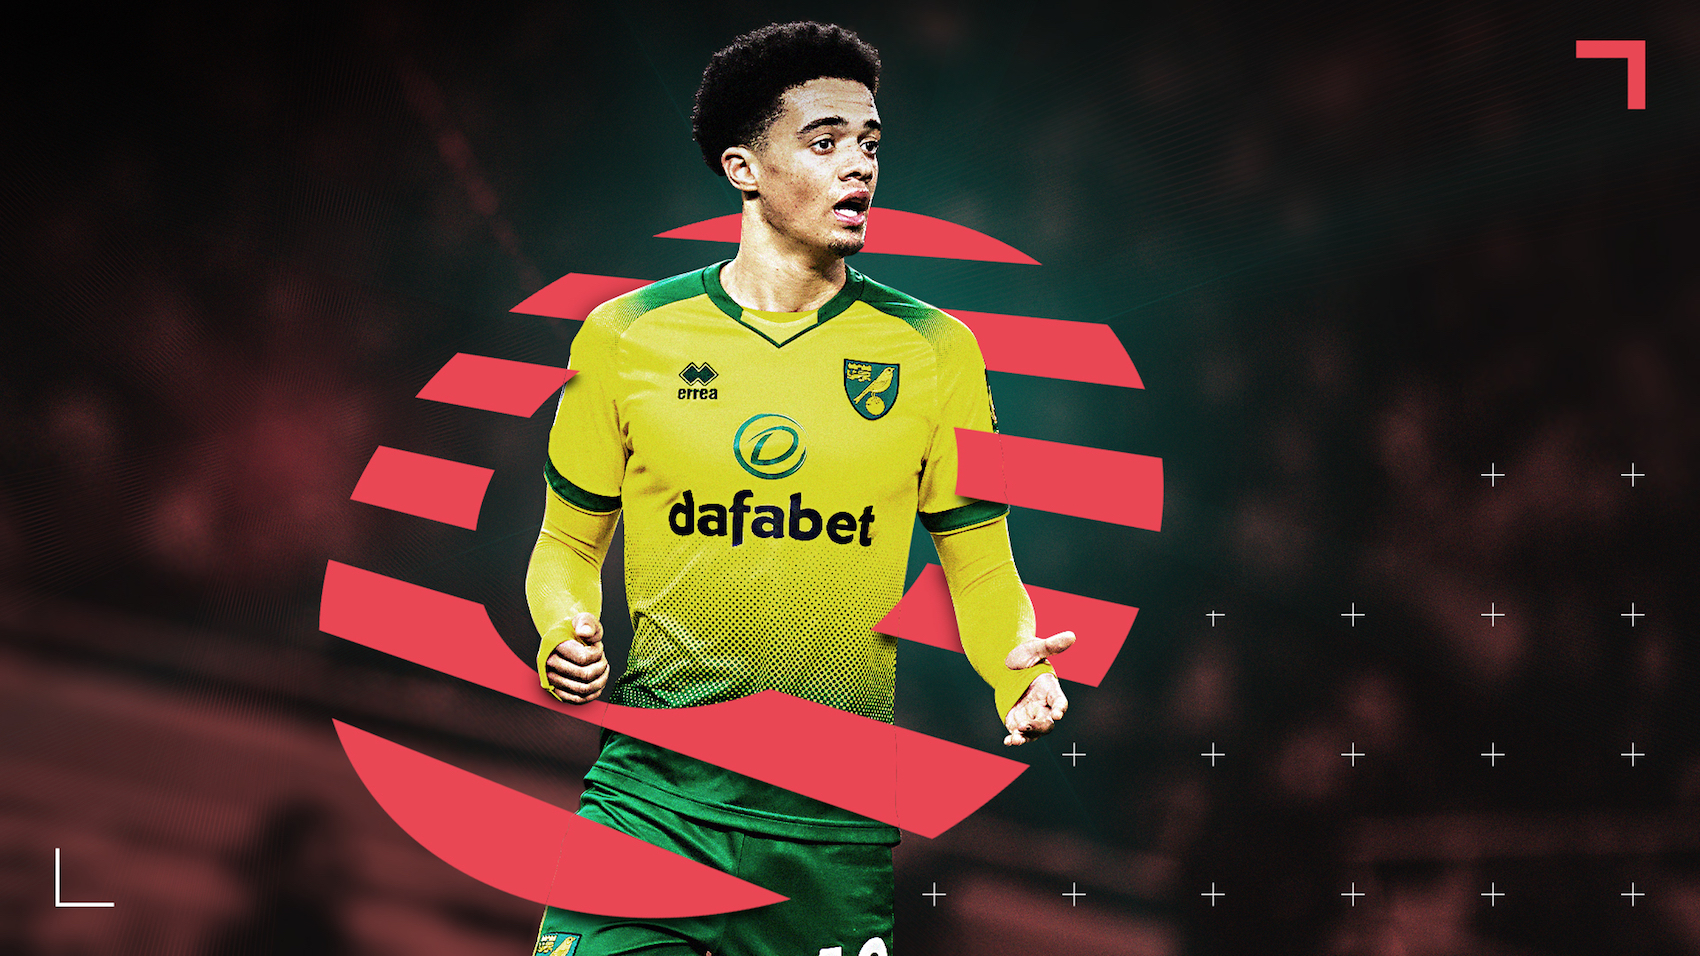 Norwich City's Jamal Lewis has been linked with a move to Premier League champions Liverpool.